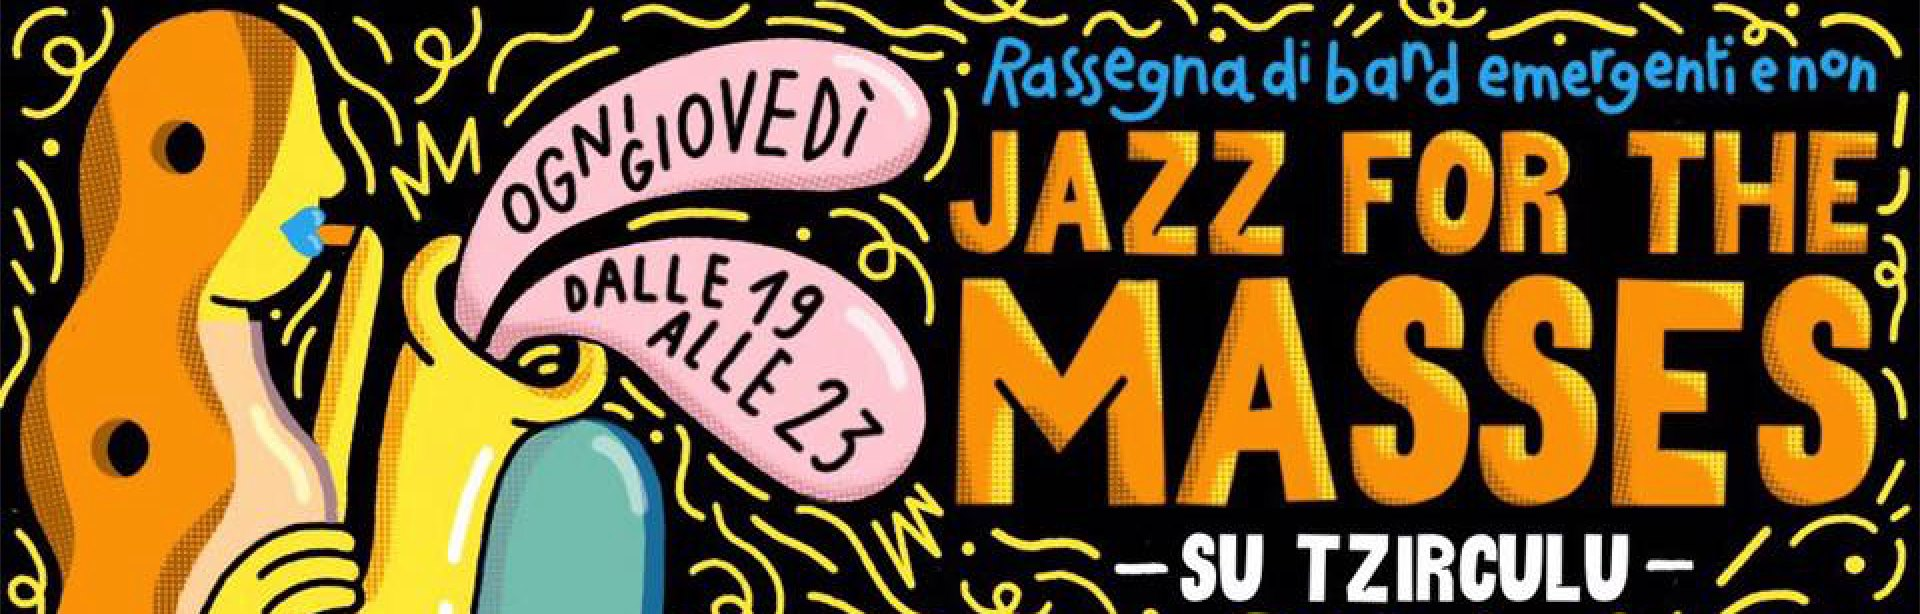 jazz for the masses - su tzirculu - jazz music - 2019 - sa scena sarda